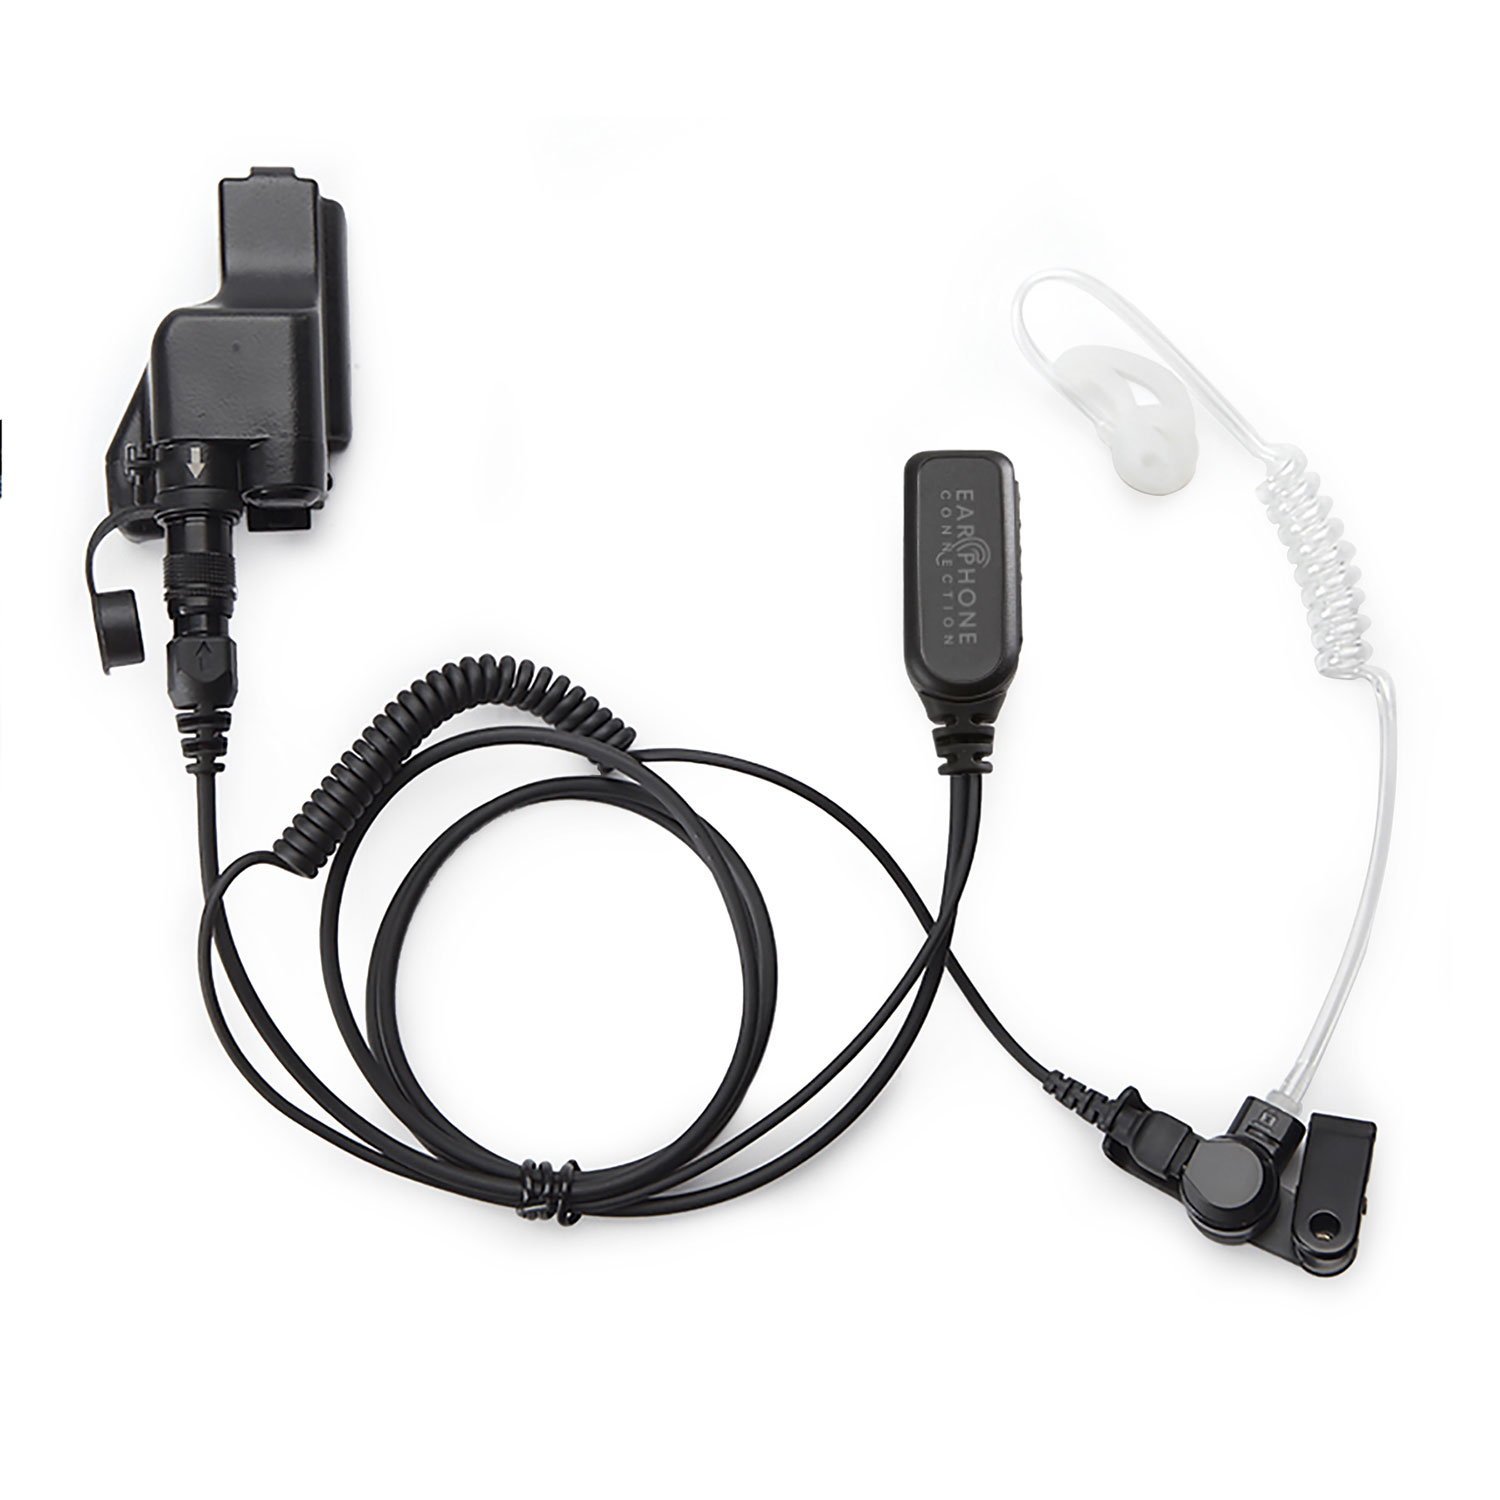 Ear Phone Connection Hawk EP1323 EC Easy Connect Lapel Micro